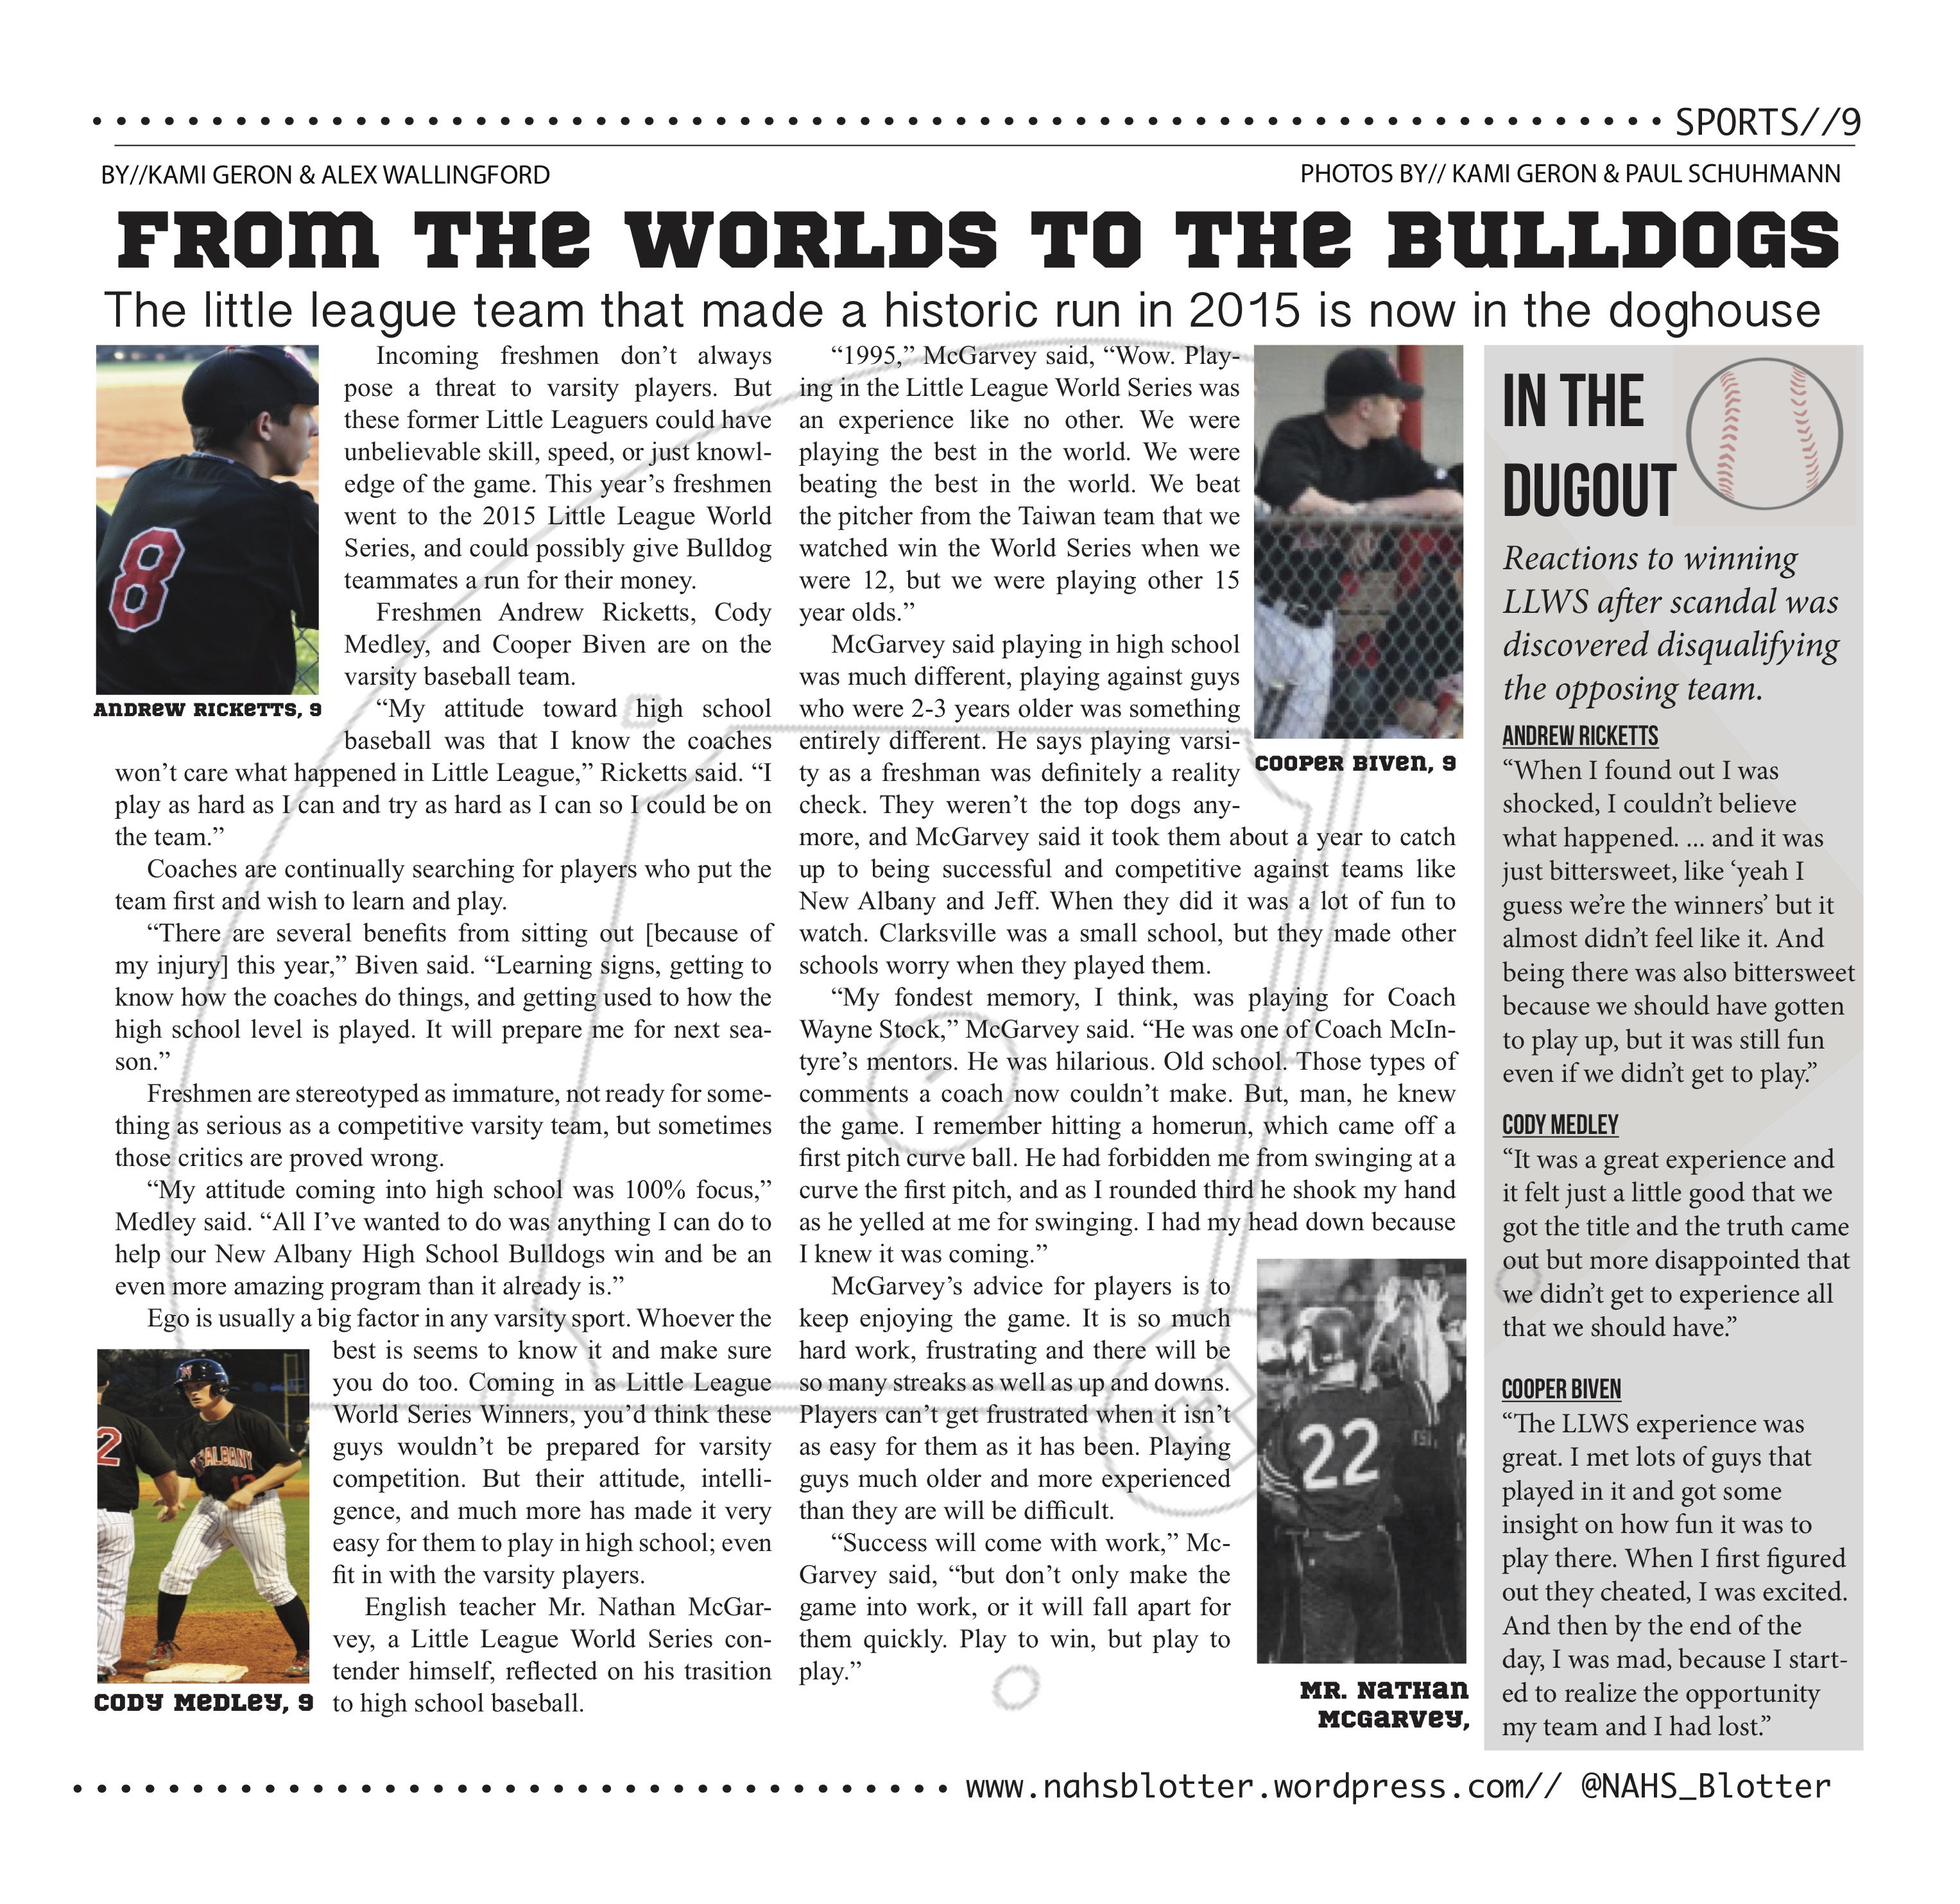 From Worlds to the Bulldogs // April Print Edition by//Kami Geron & Alex Wallingford